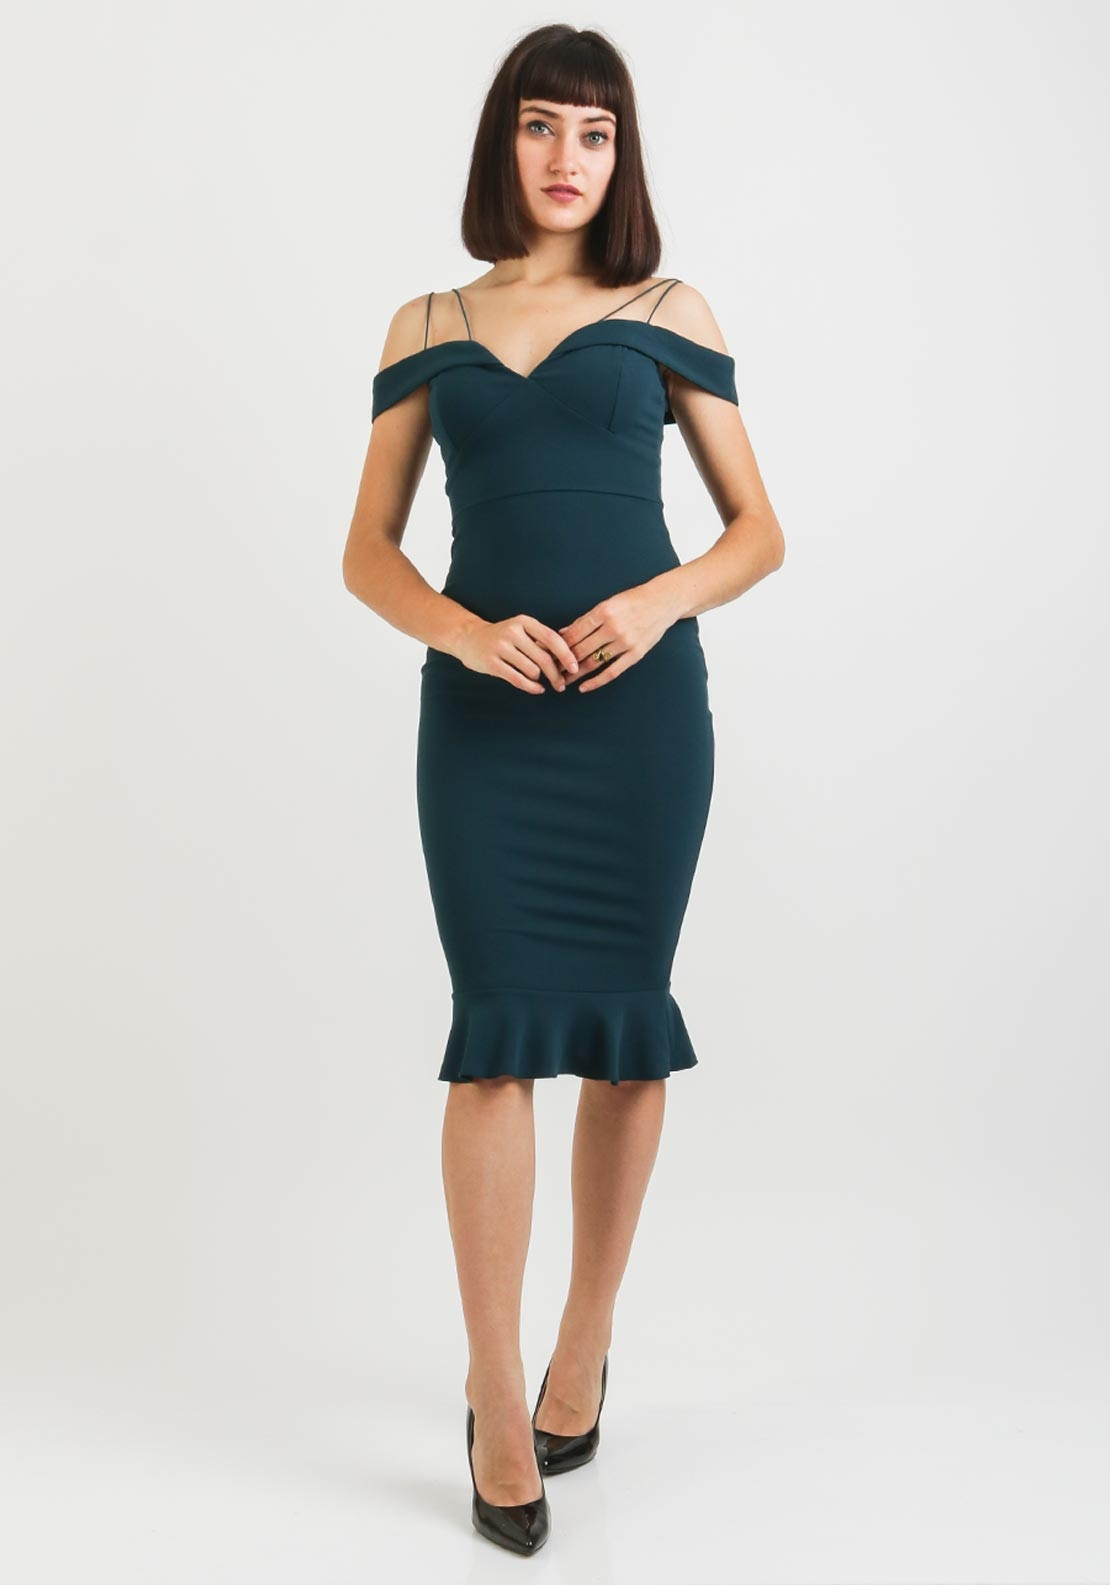 038b7566ab085 AX Paris Off the Shoulder Strappy Fishtail Dress, Teal. Be the first to  review this product